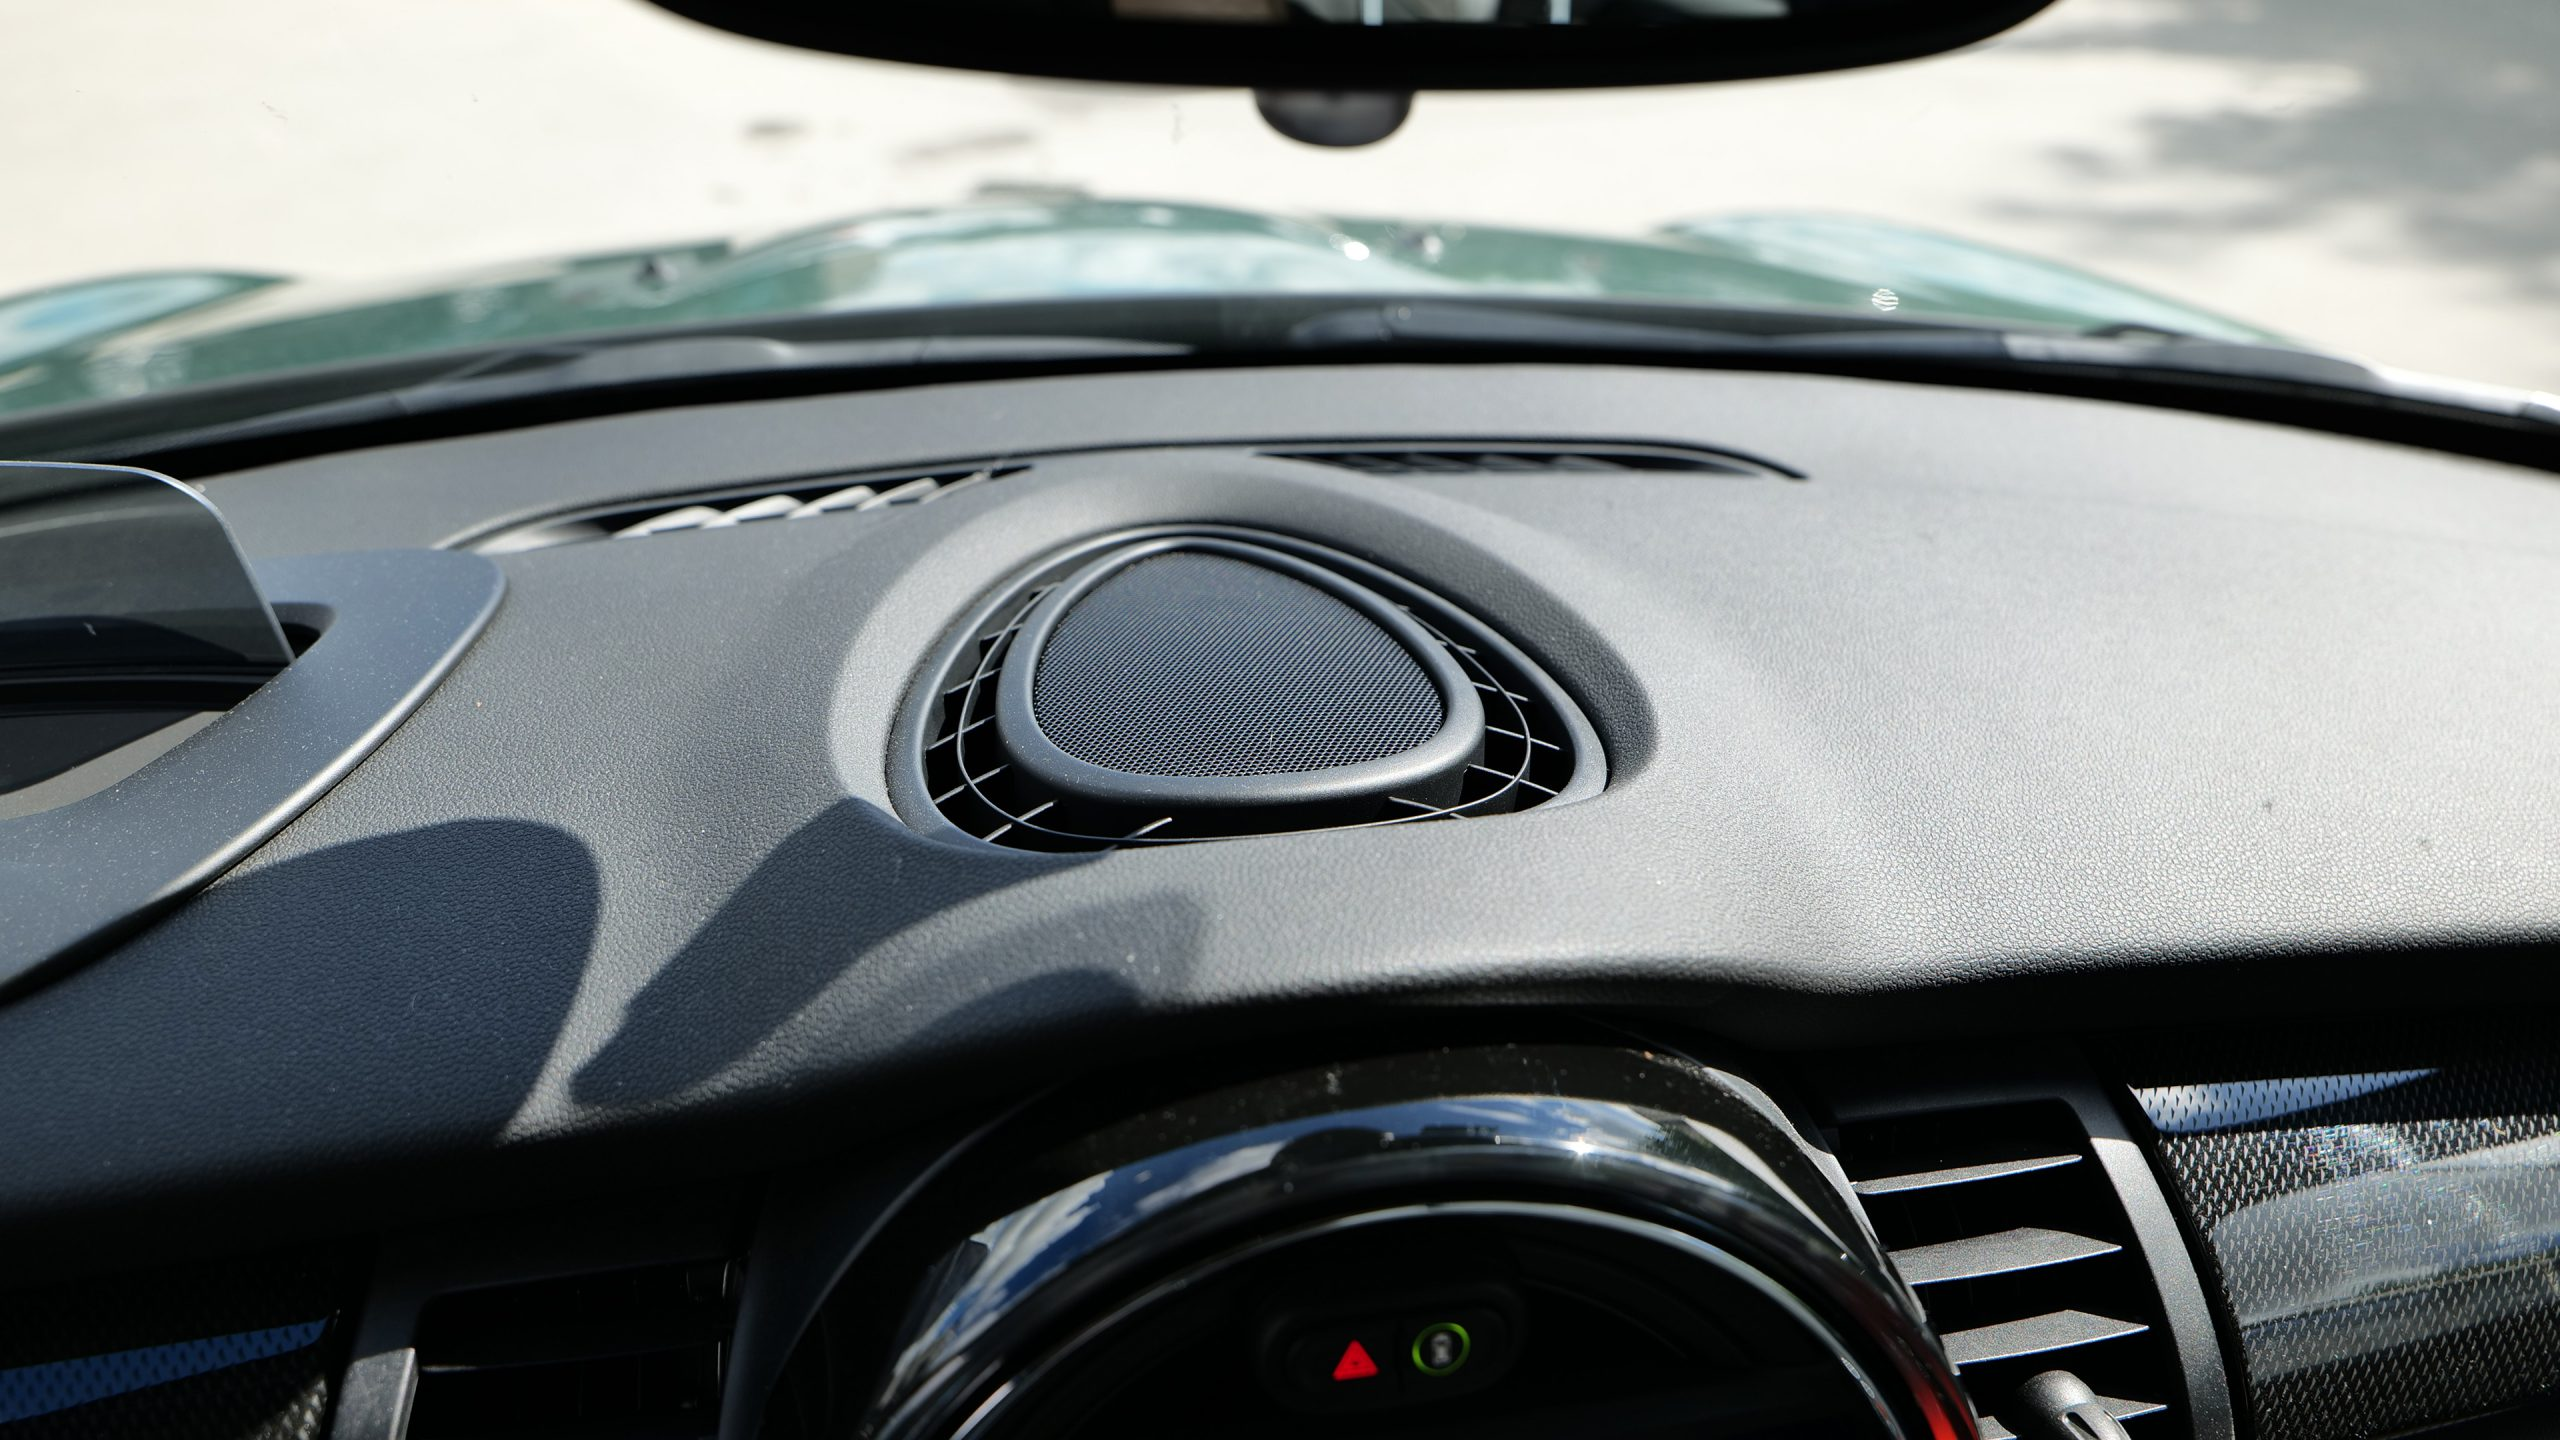 Mini Cooper SE center speaker